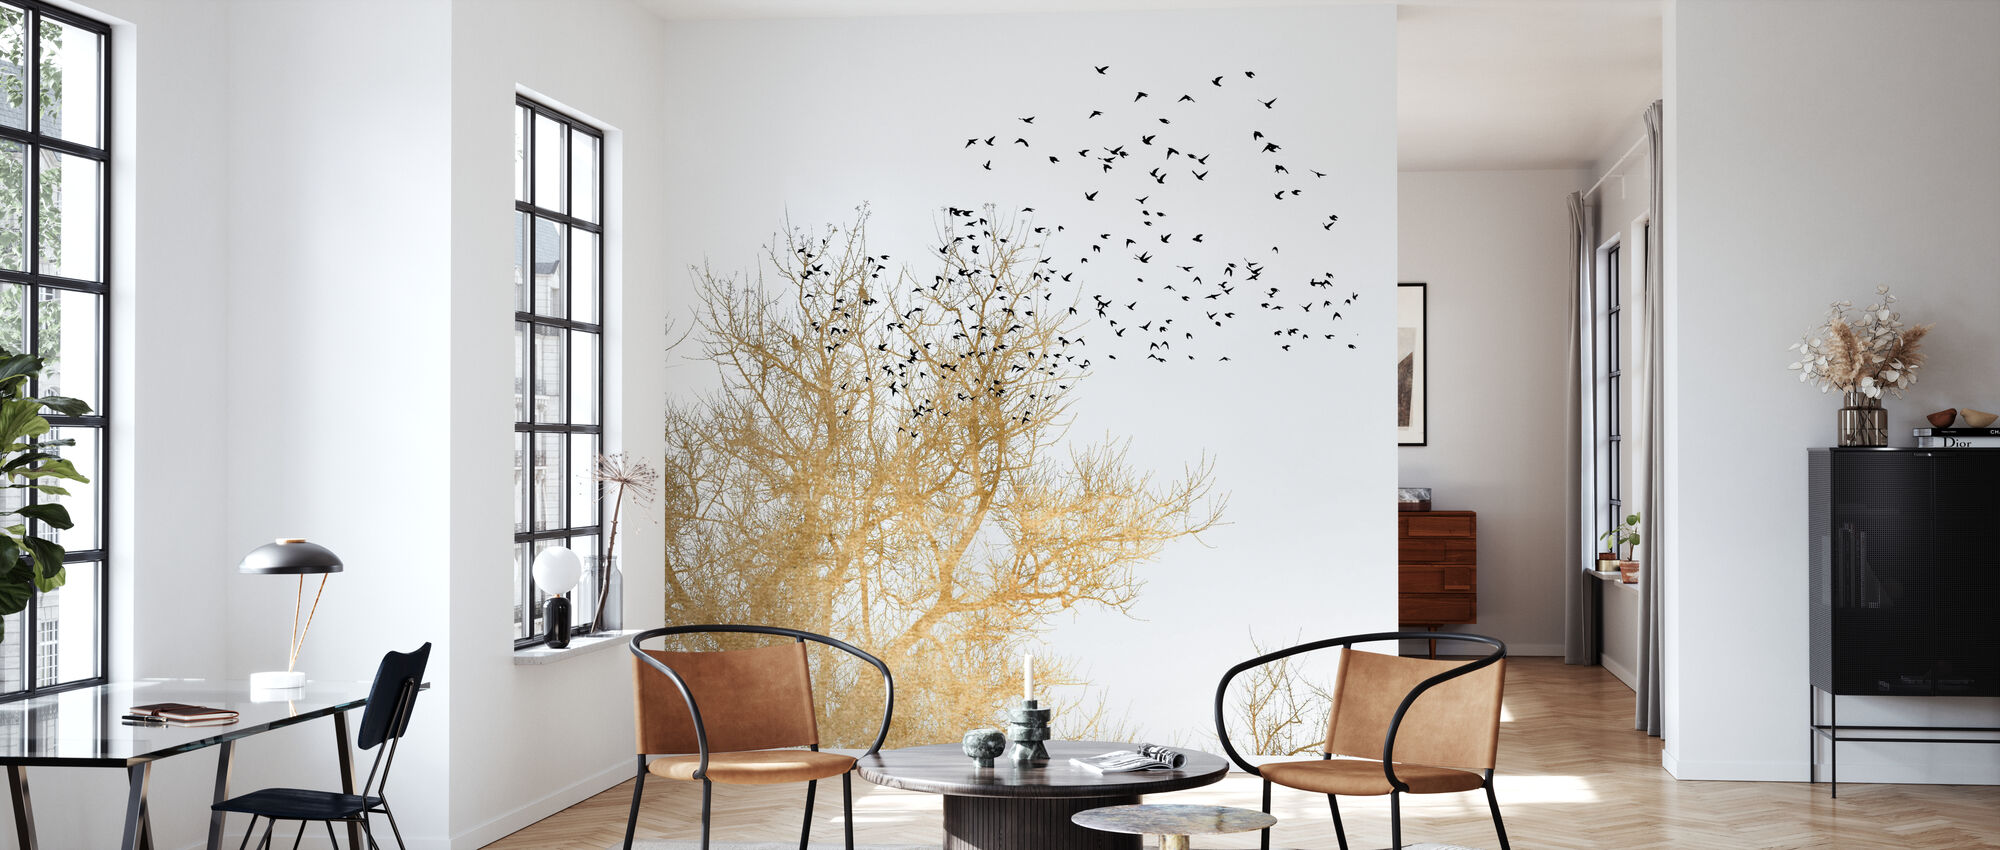 Golden Birds - Wallpaper - Living Room